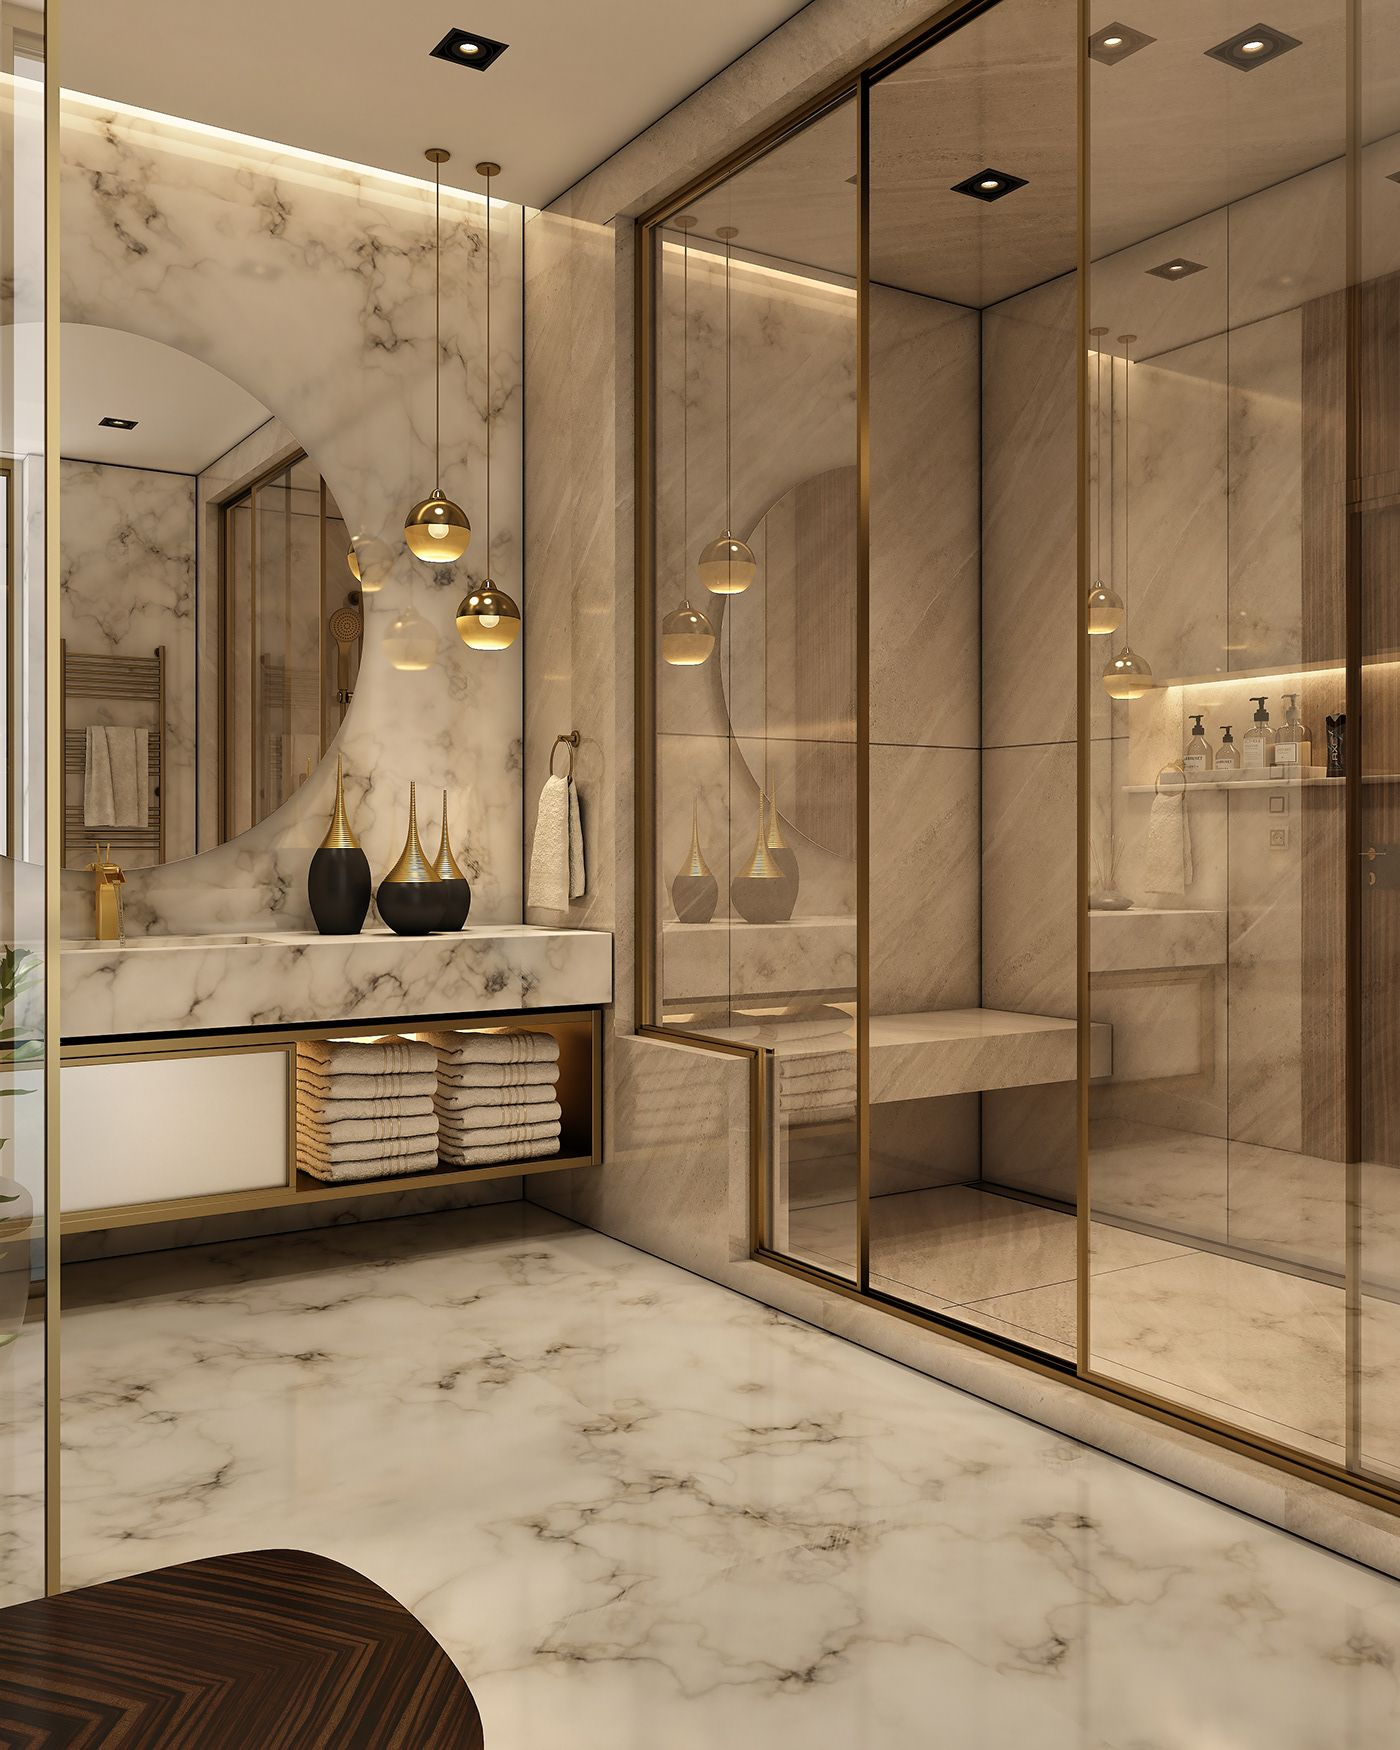 Luxurious Bathroom On Behance Bathroom Design Luxury Bathroom Interior Design Modern Bathroom Design